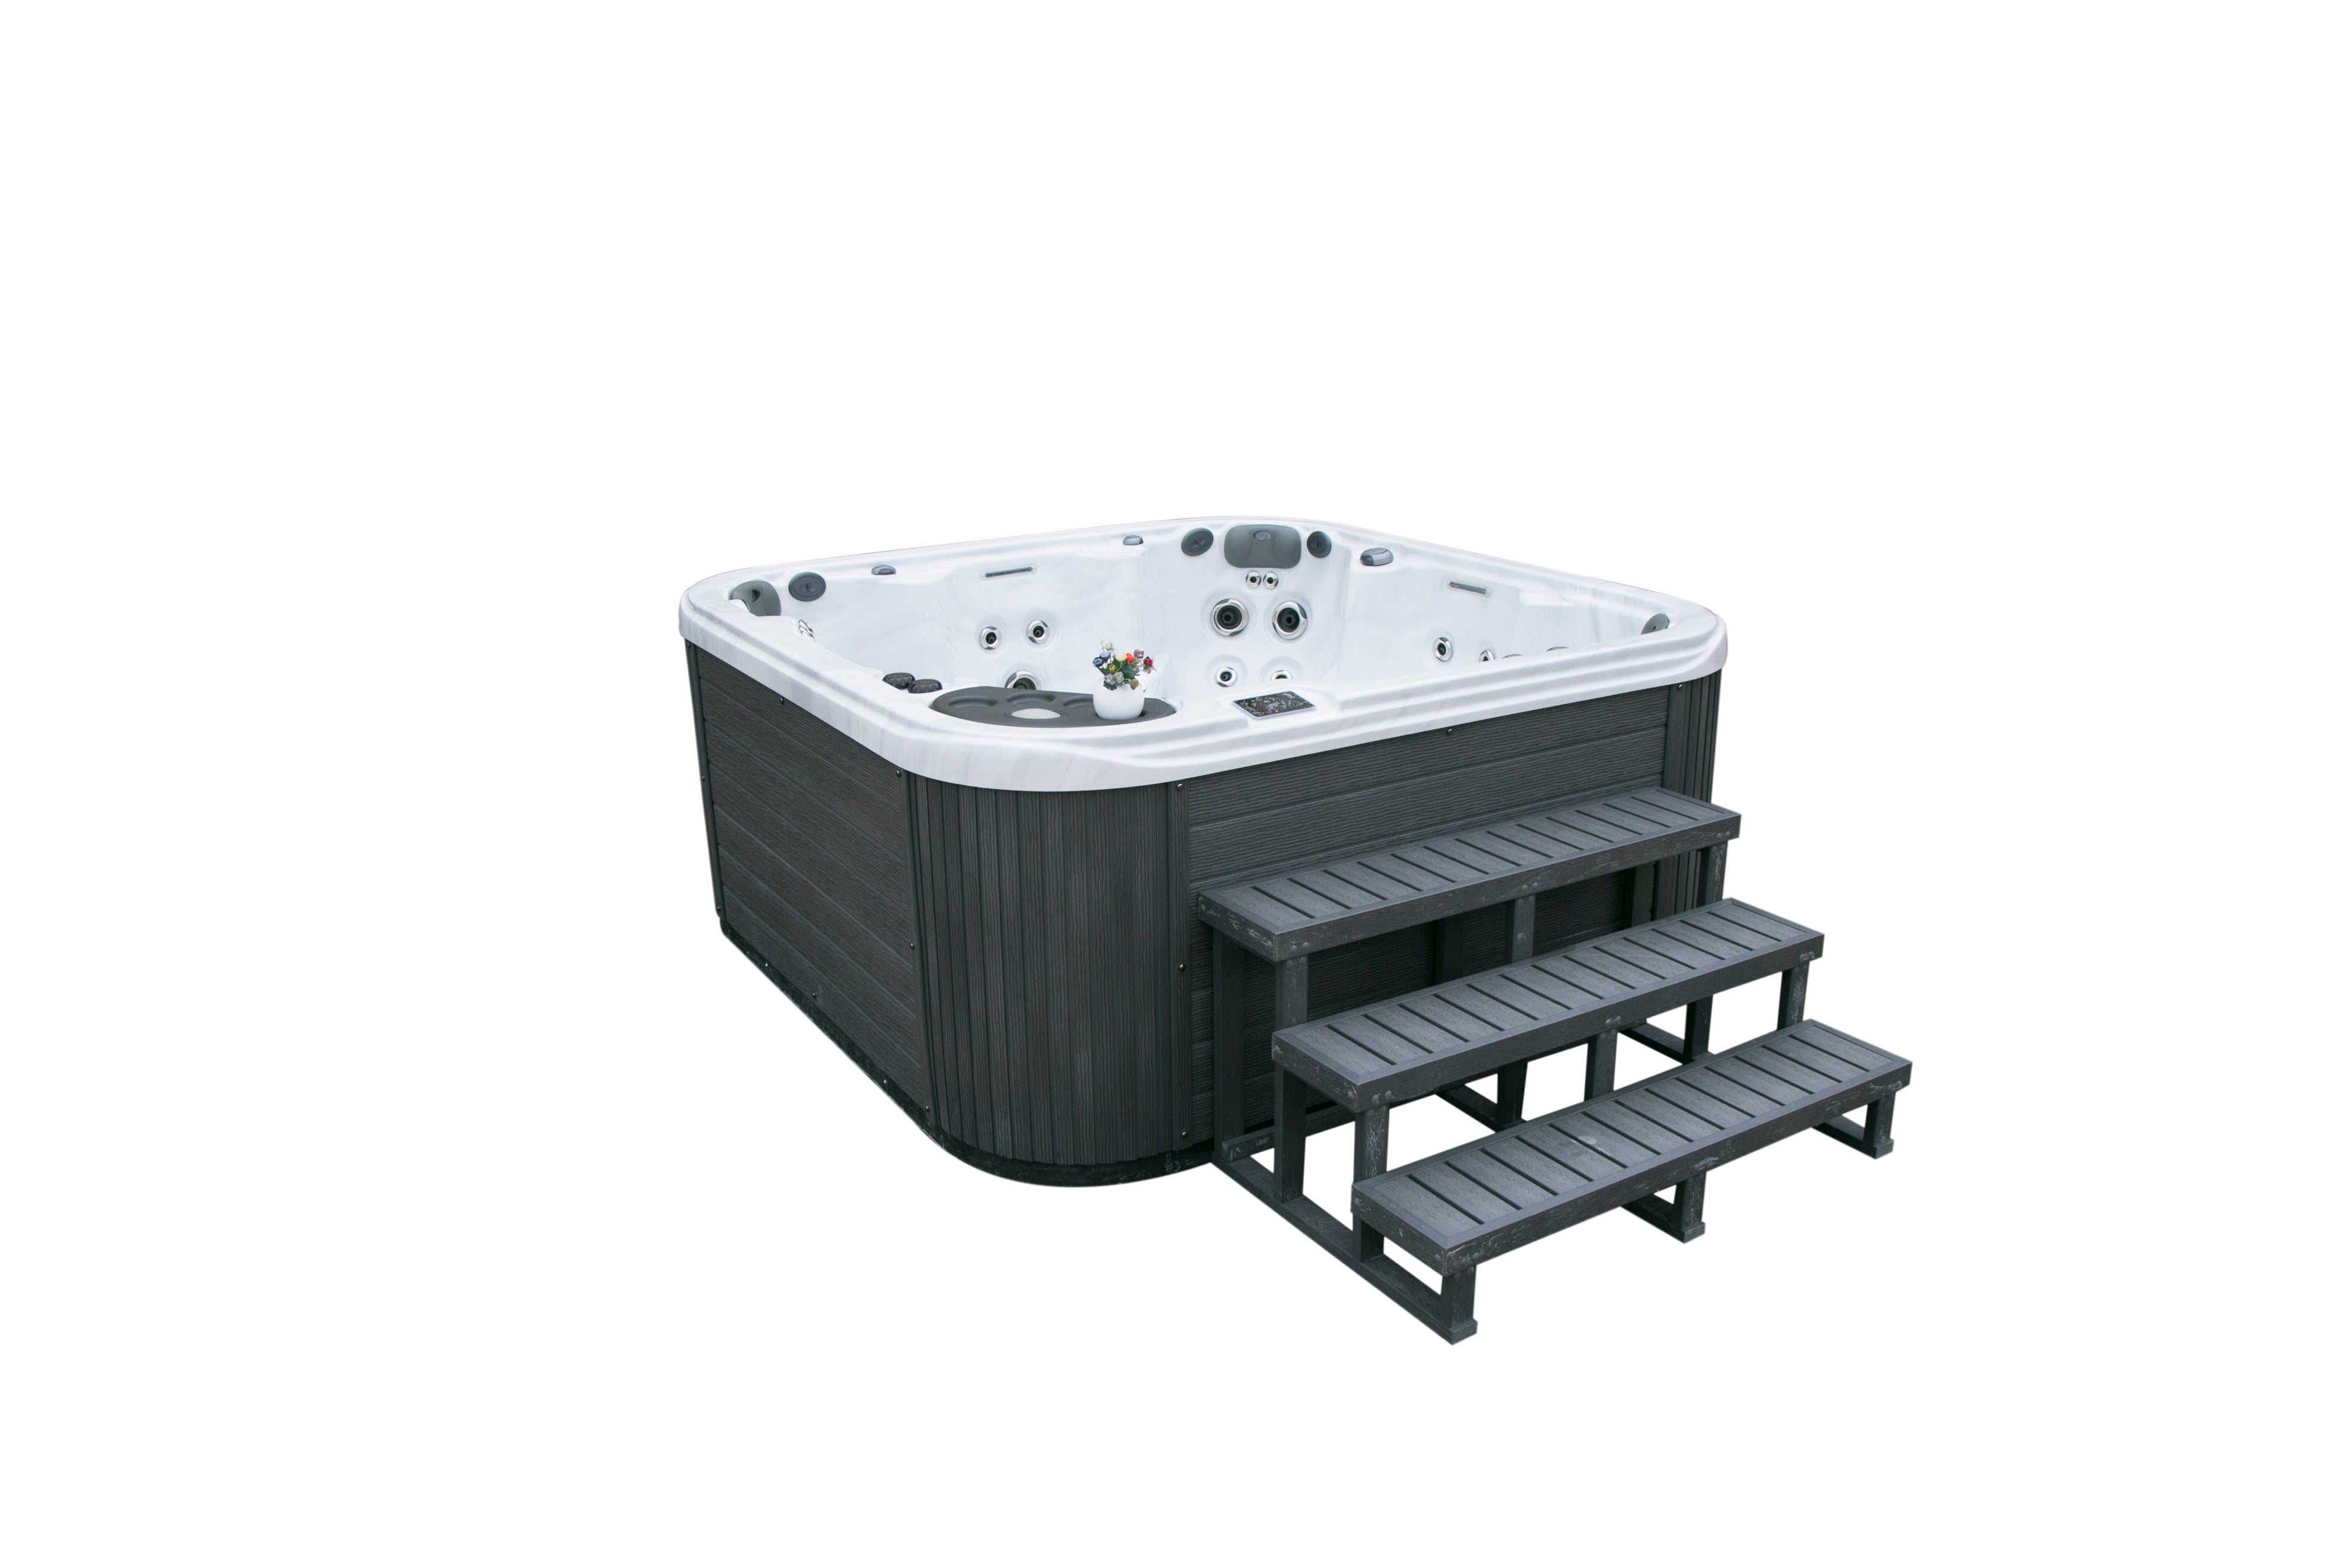 Calypso Hot Tub Spa - 7 Person, 60 Jets